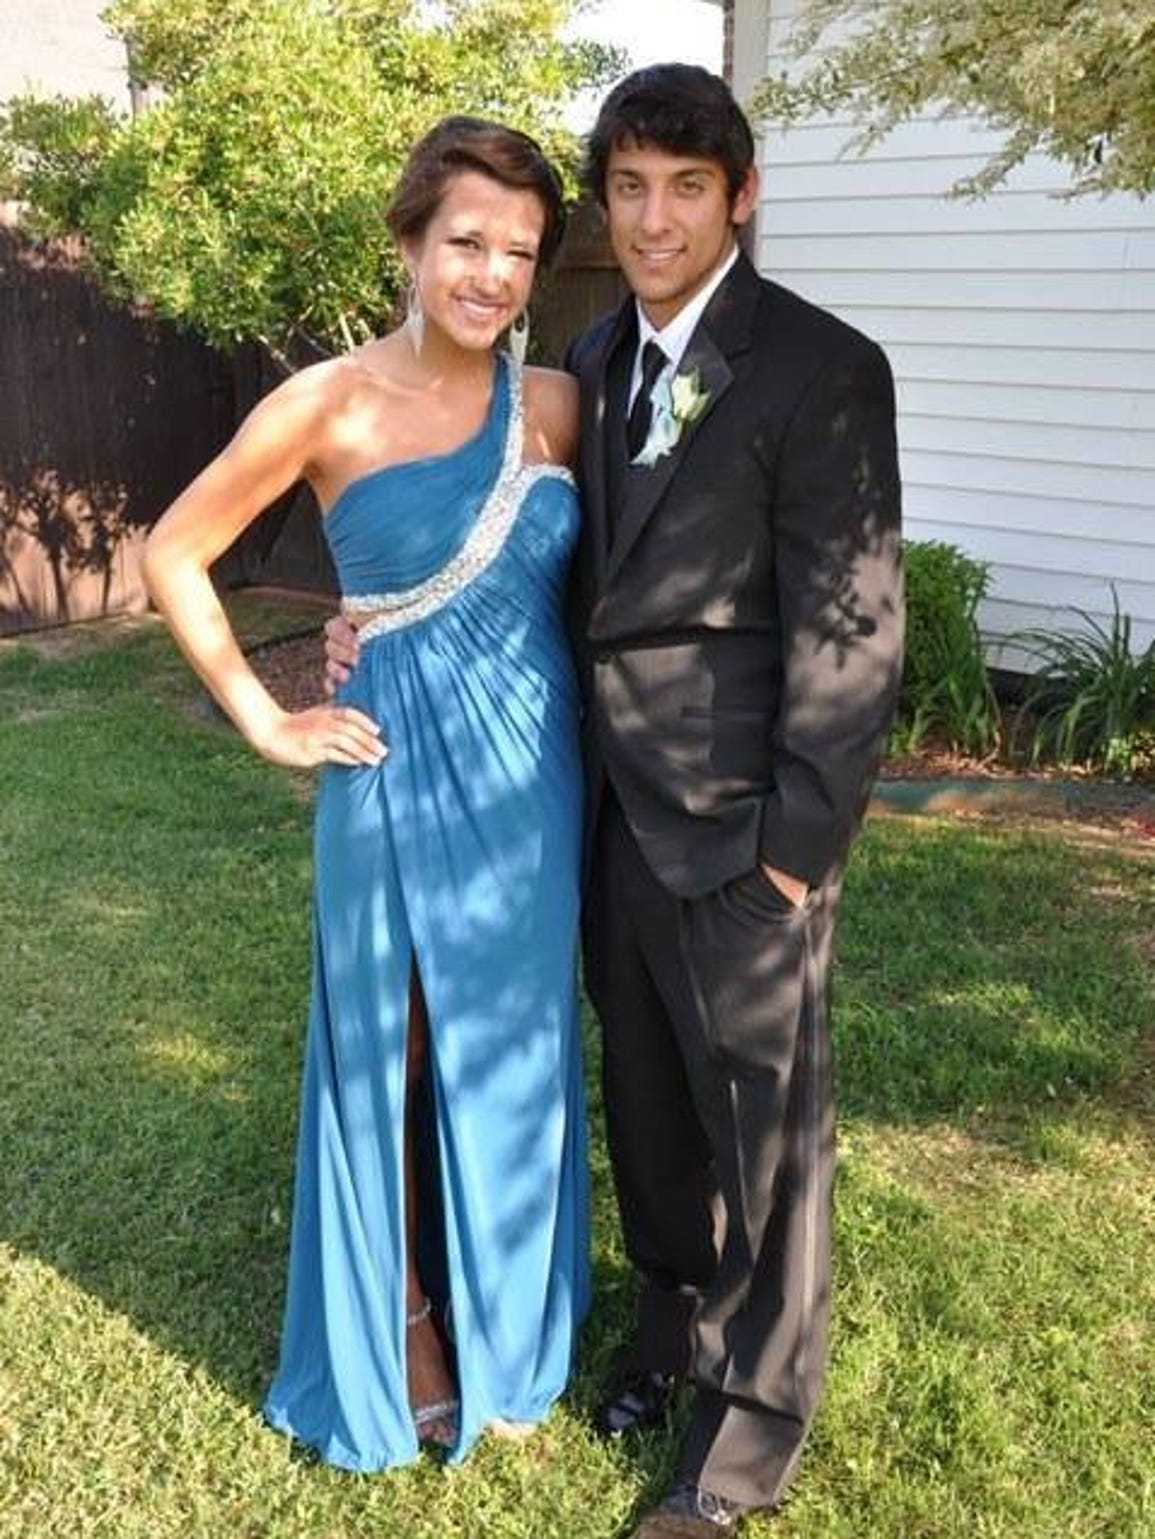 Christian and his prom date, Danielle.